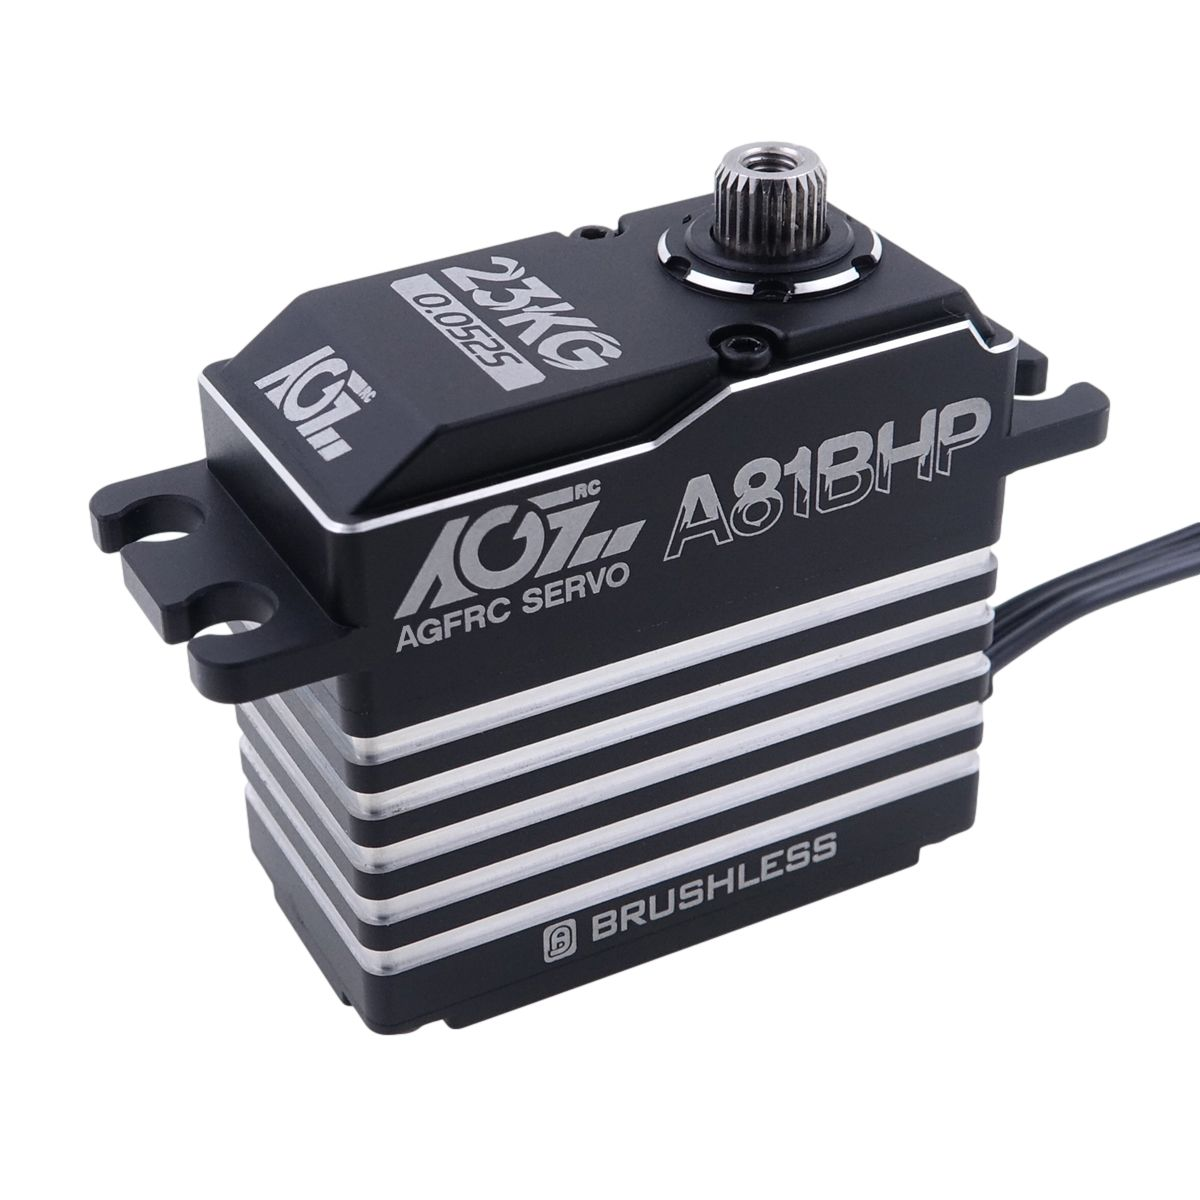 AGFRC A81BHP 23KG 0.052s Ultra Fast Speed HV Steel Gears Brushless Standard Servo for 1/8 on-road cars 1/10 nitro touring